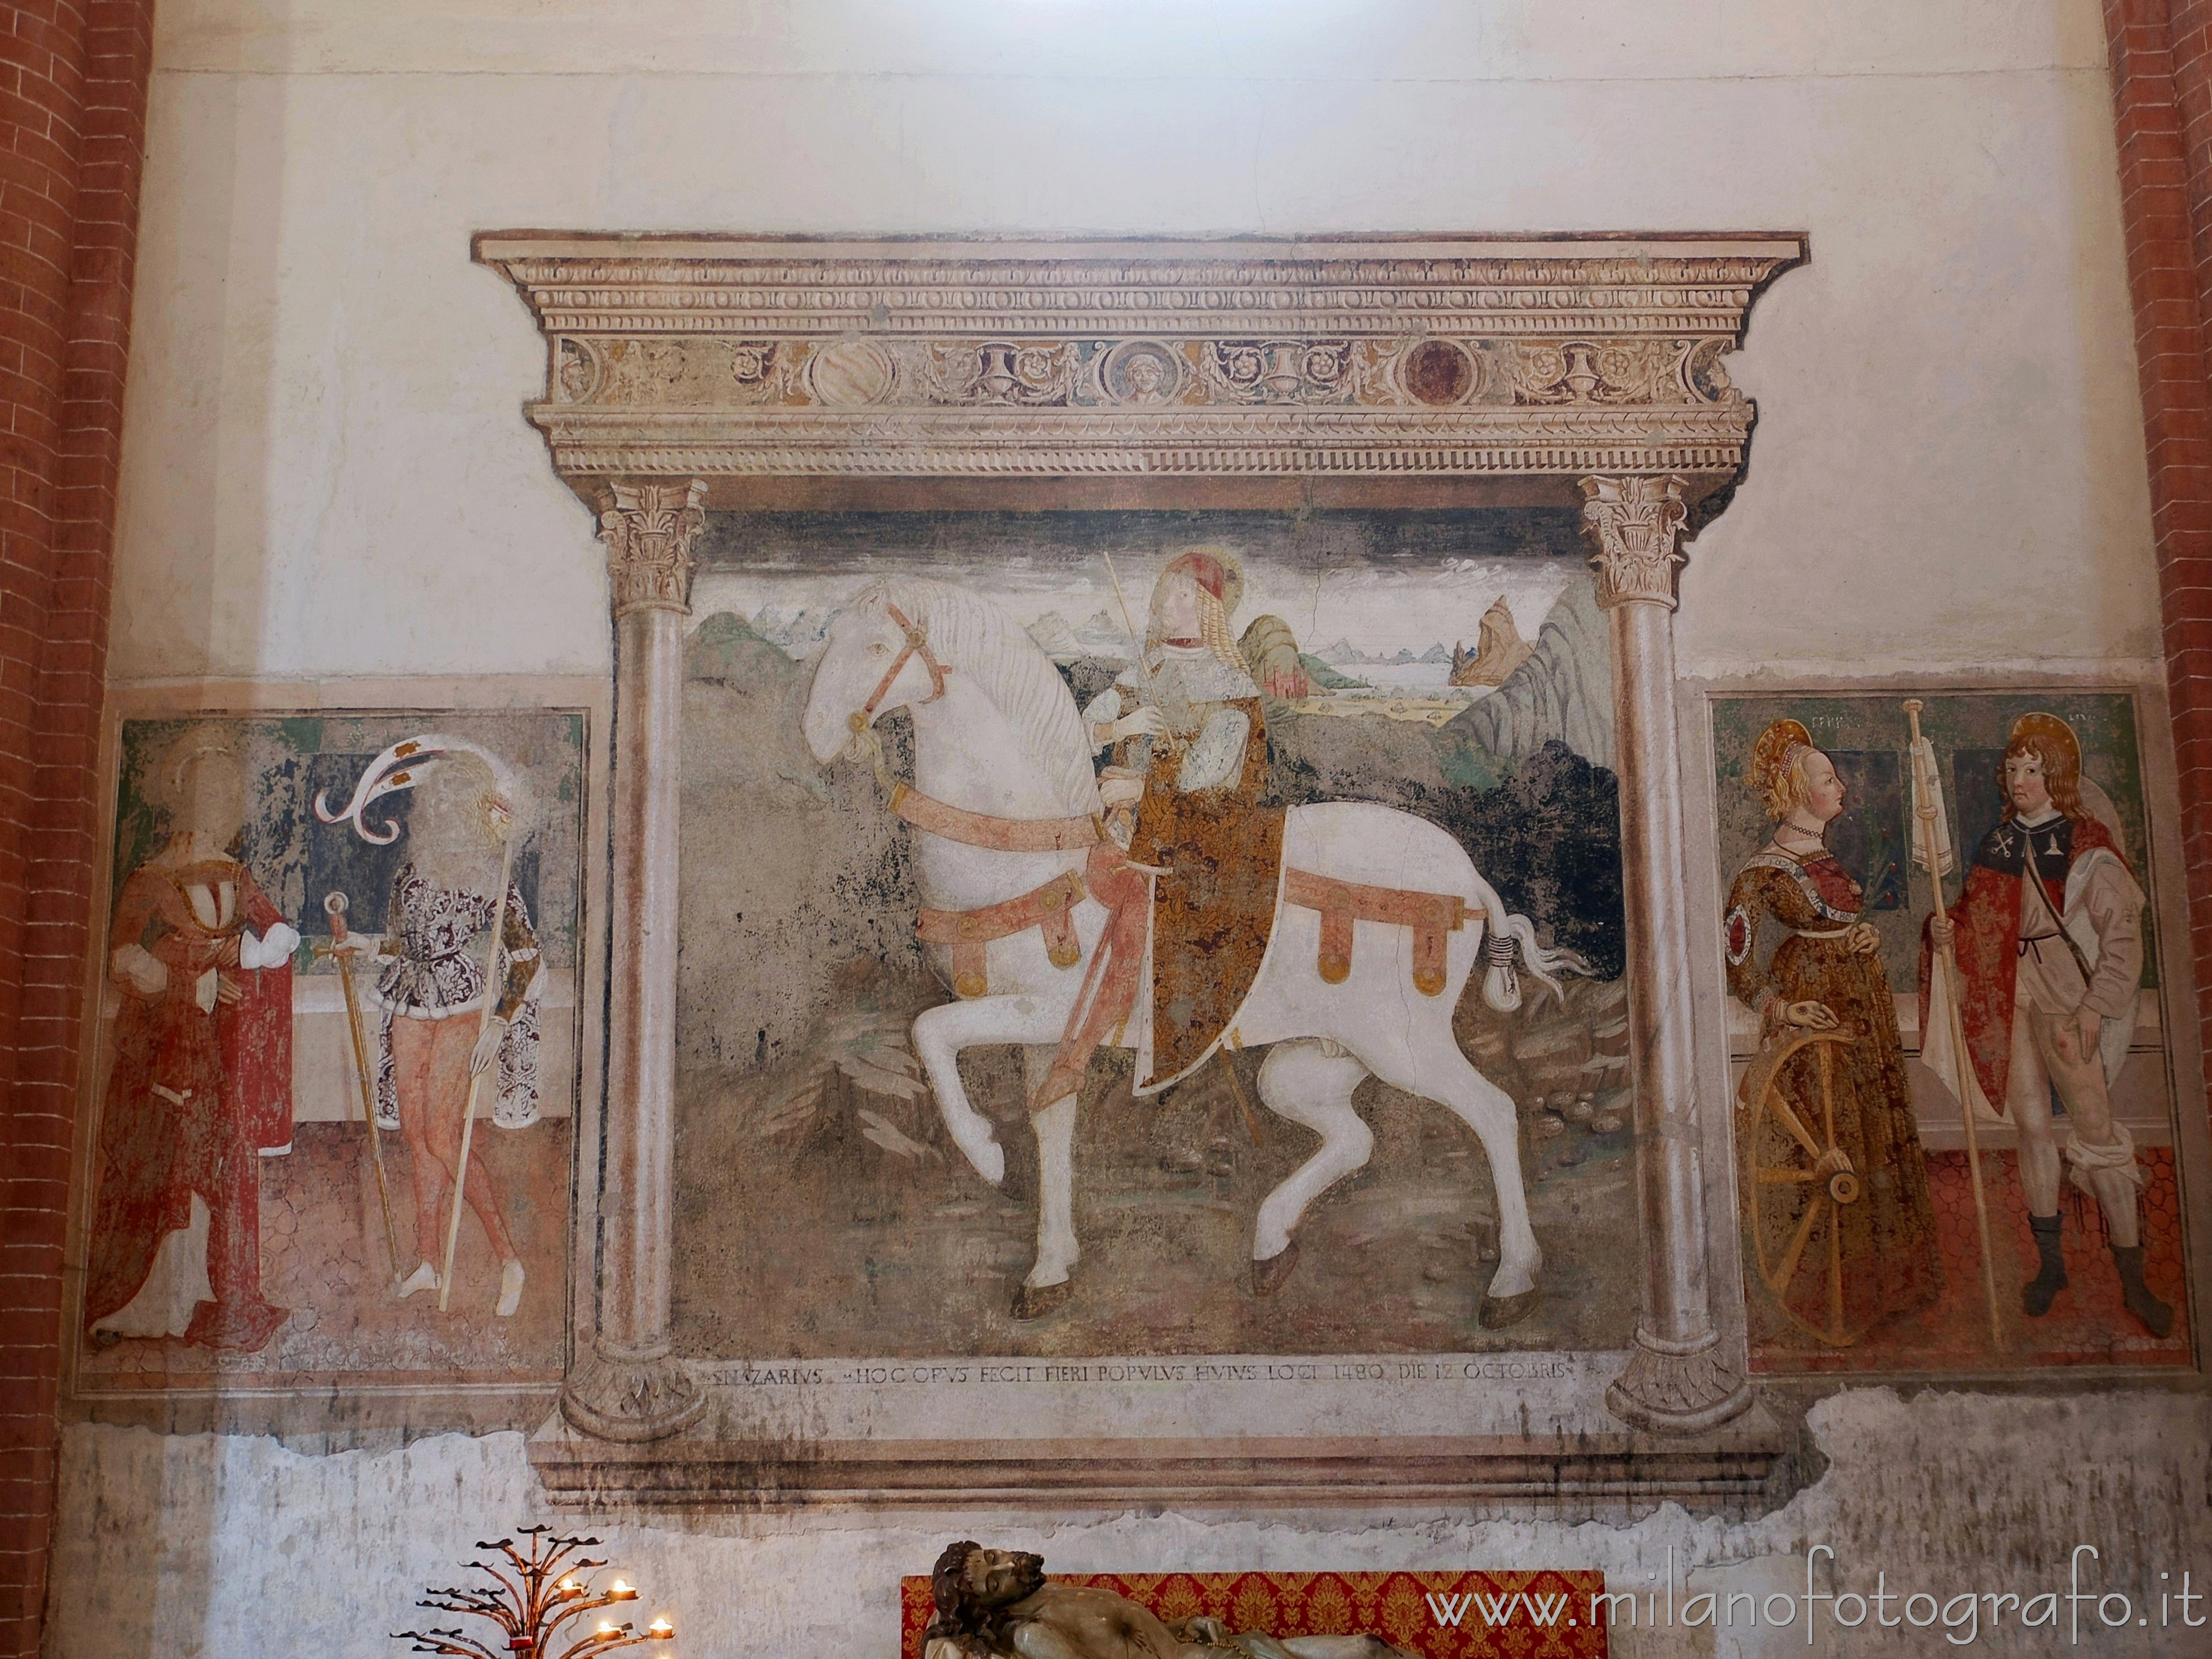 San Nazzaro Sesia (Novara, Italy): Fresco of Saint Nazario riding in the Abbey of the Saints Nazario and Celso - San Nazzaro Sesia (Novara, Italy)